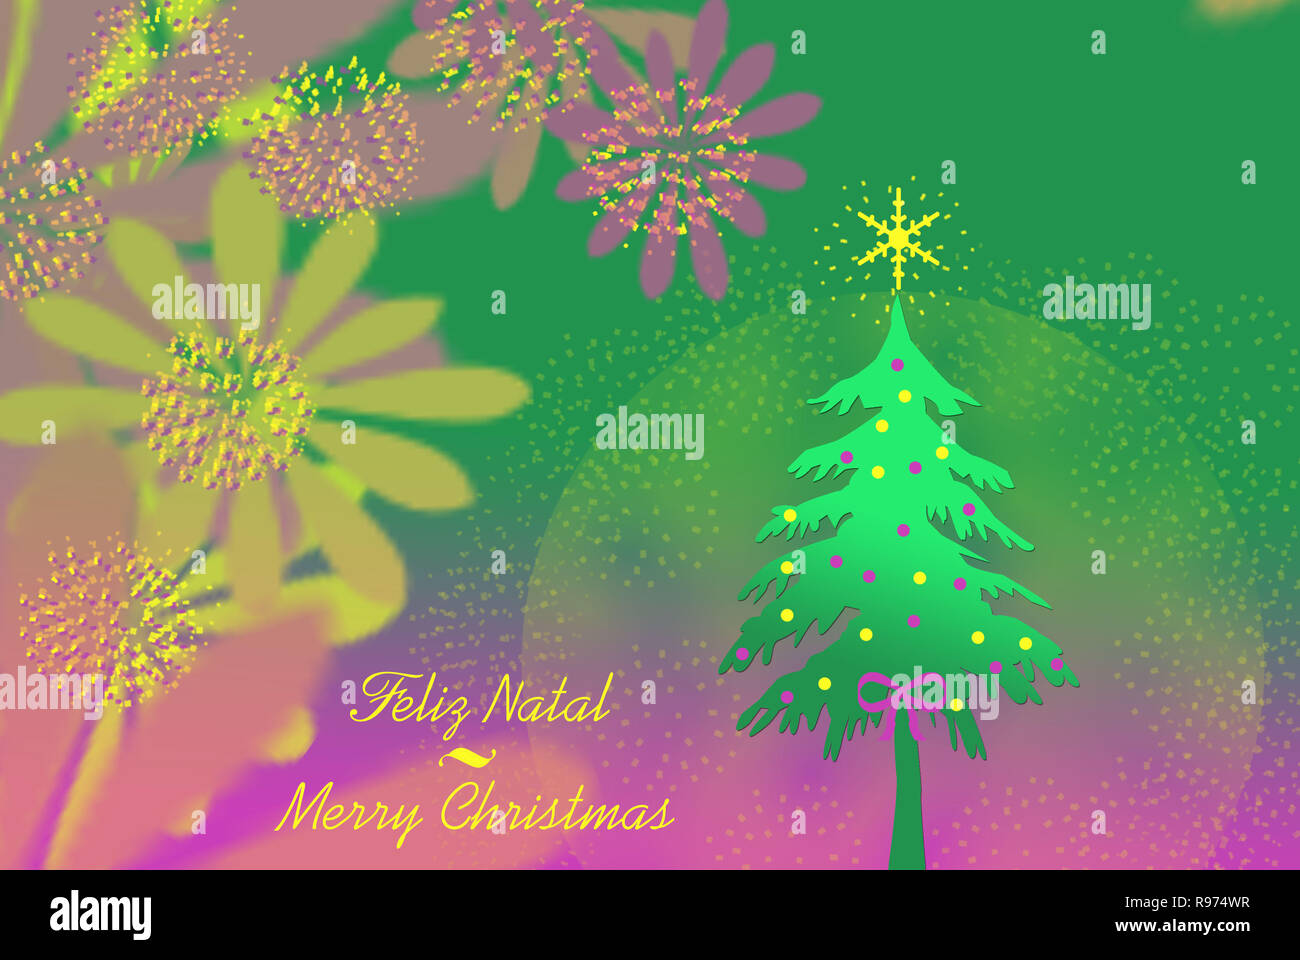 Merry Christmas Card Illustration  with text written in Portuguese and English. Stock Photo